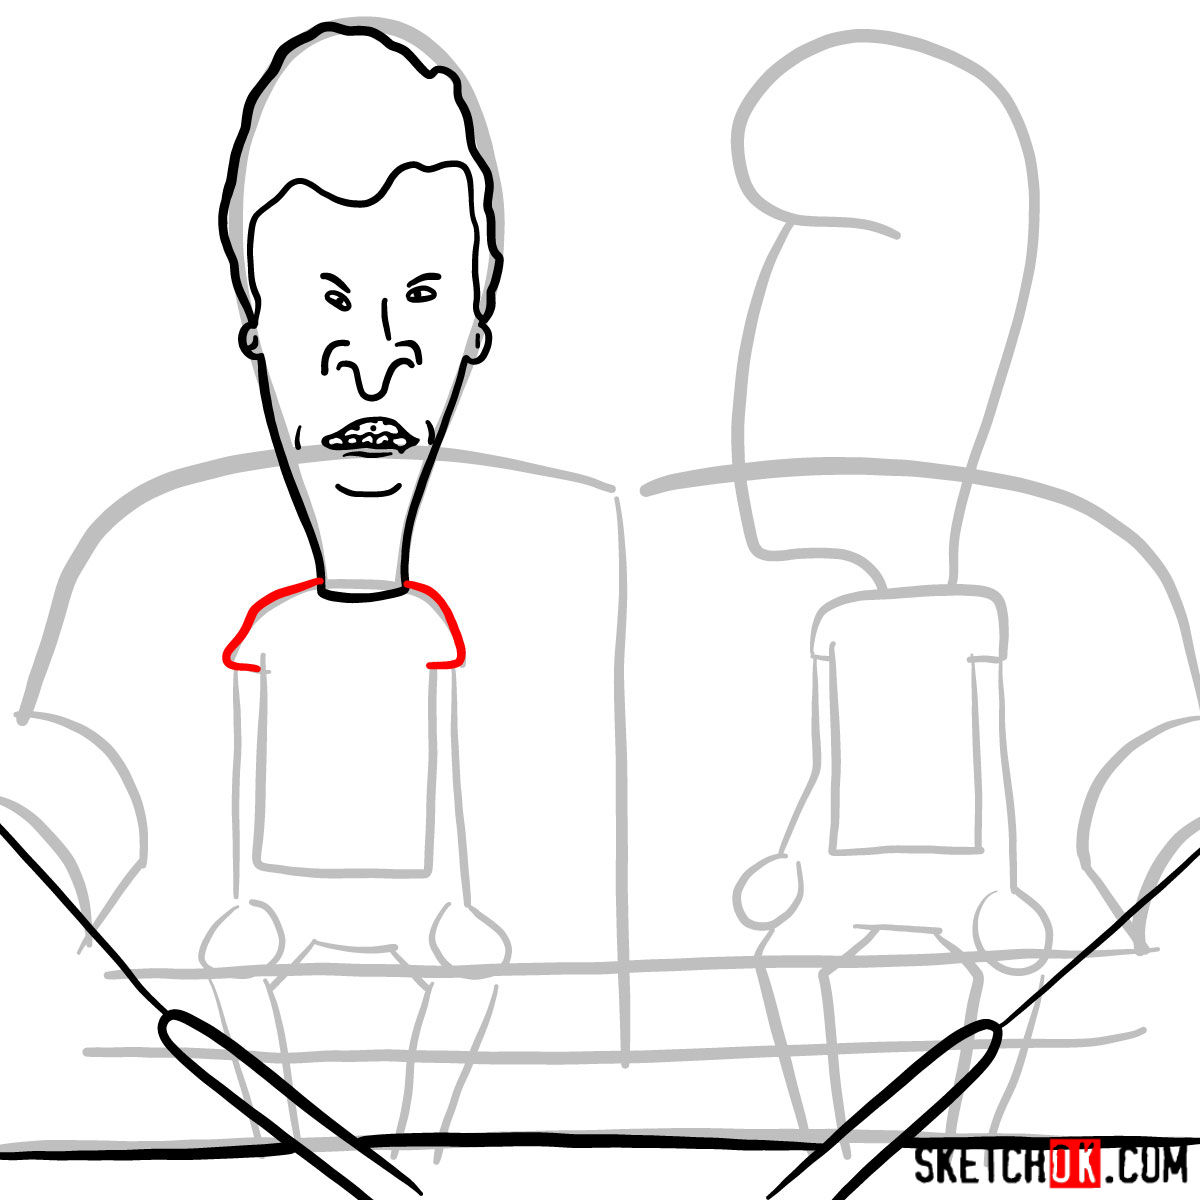 How to draw Beavis and Butt-Head - step 06